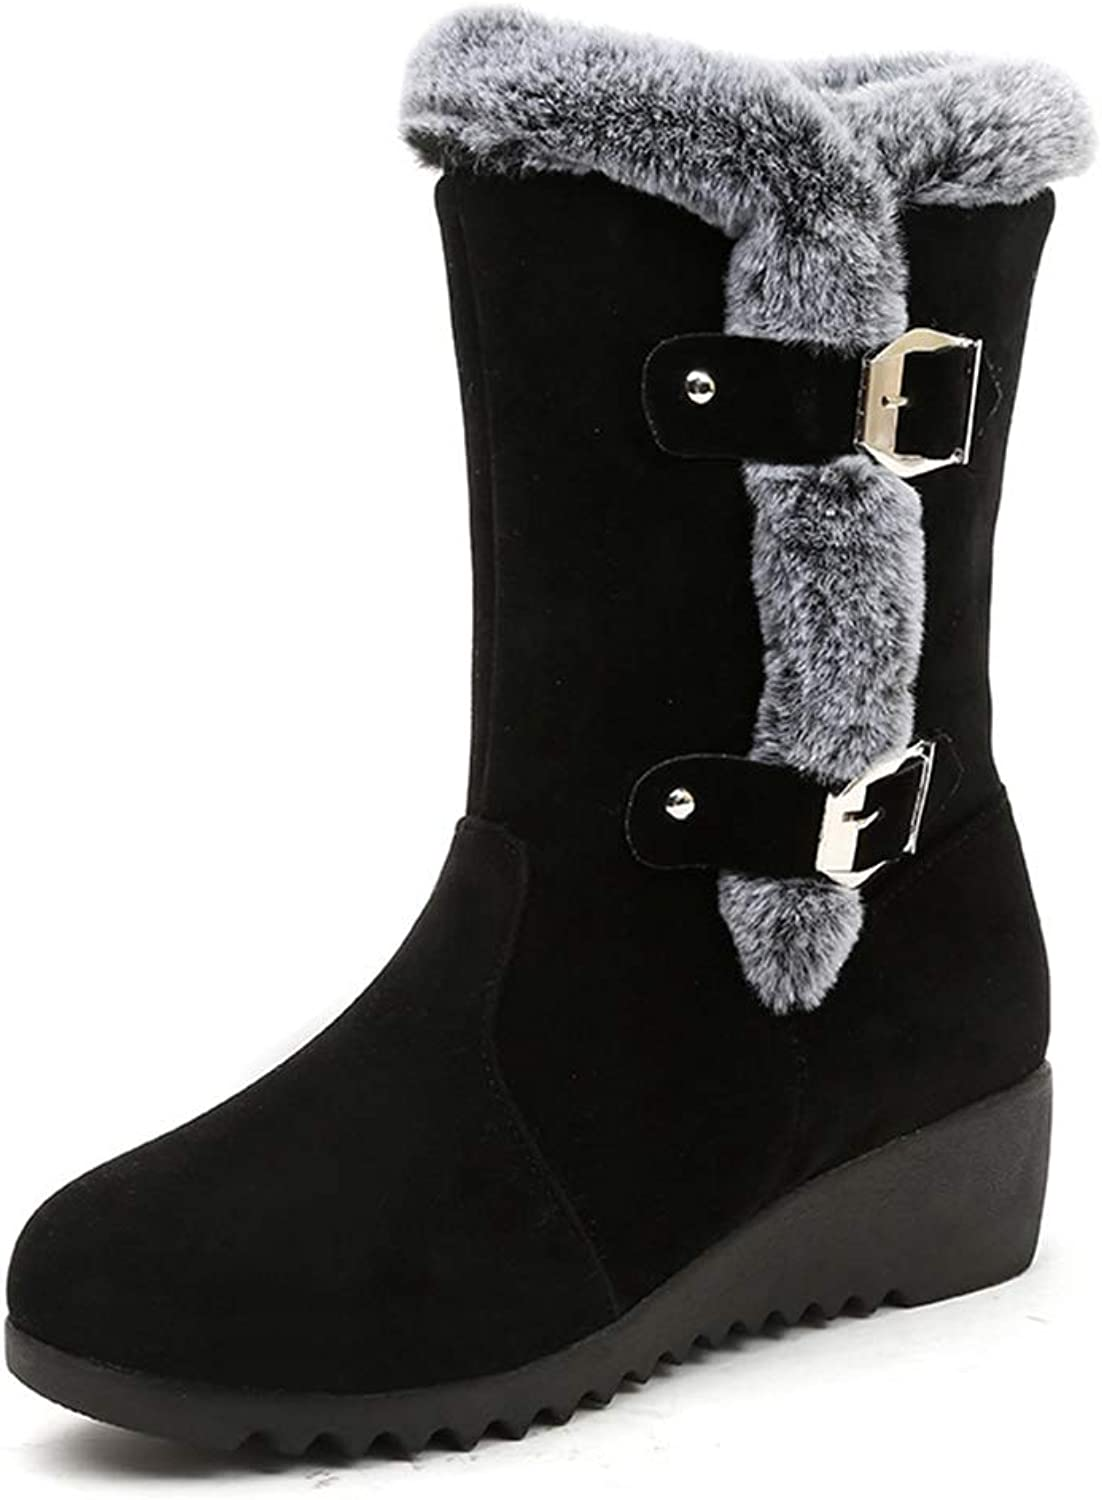 CYBLING Women's Round Toe Low Wedges Short Boots Winter Faux Fur Buckle Waterproof Warm Snow Boots